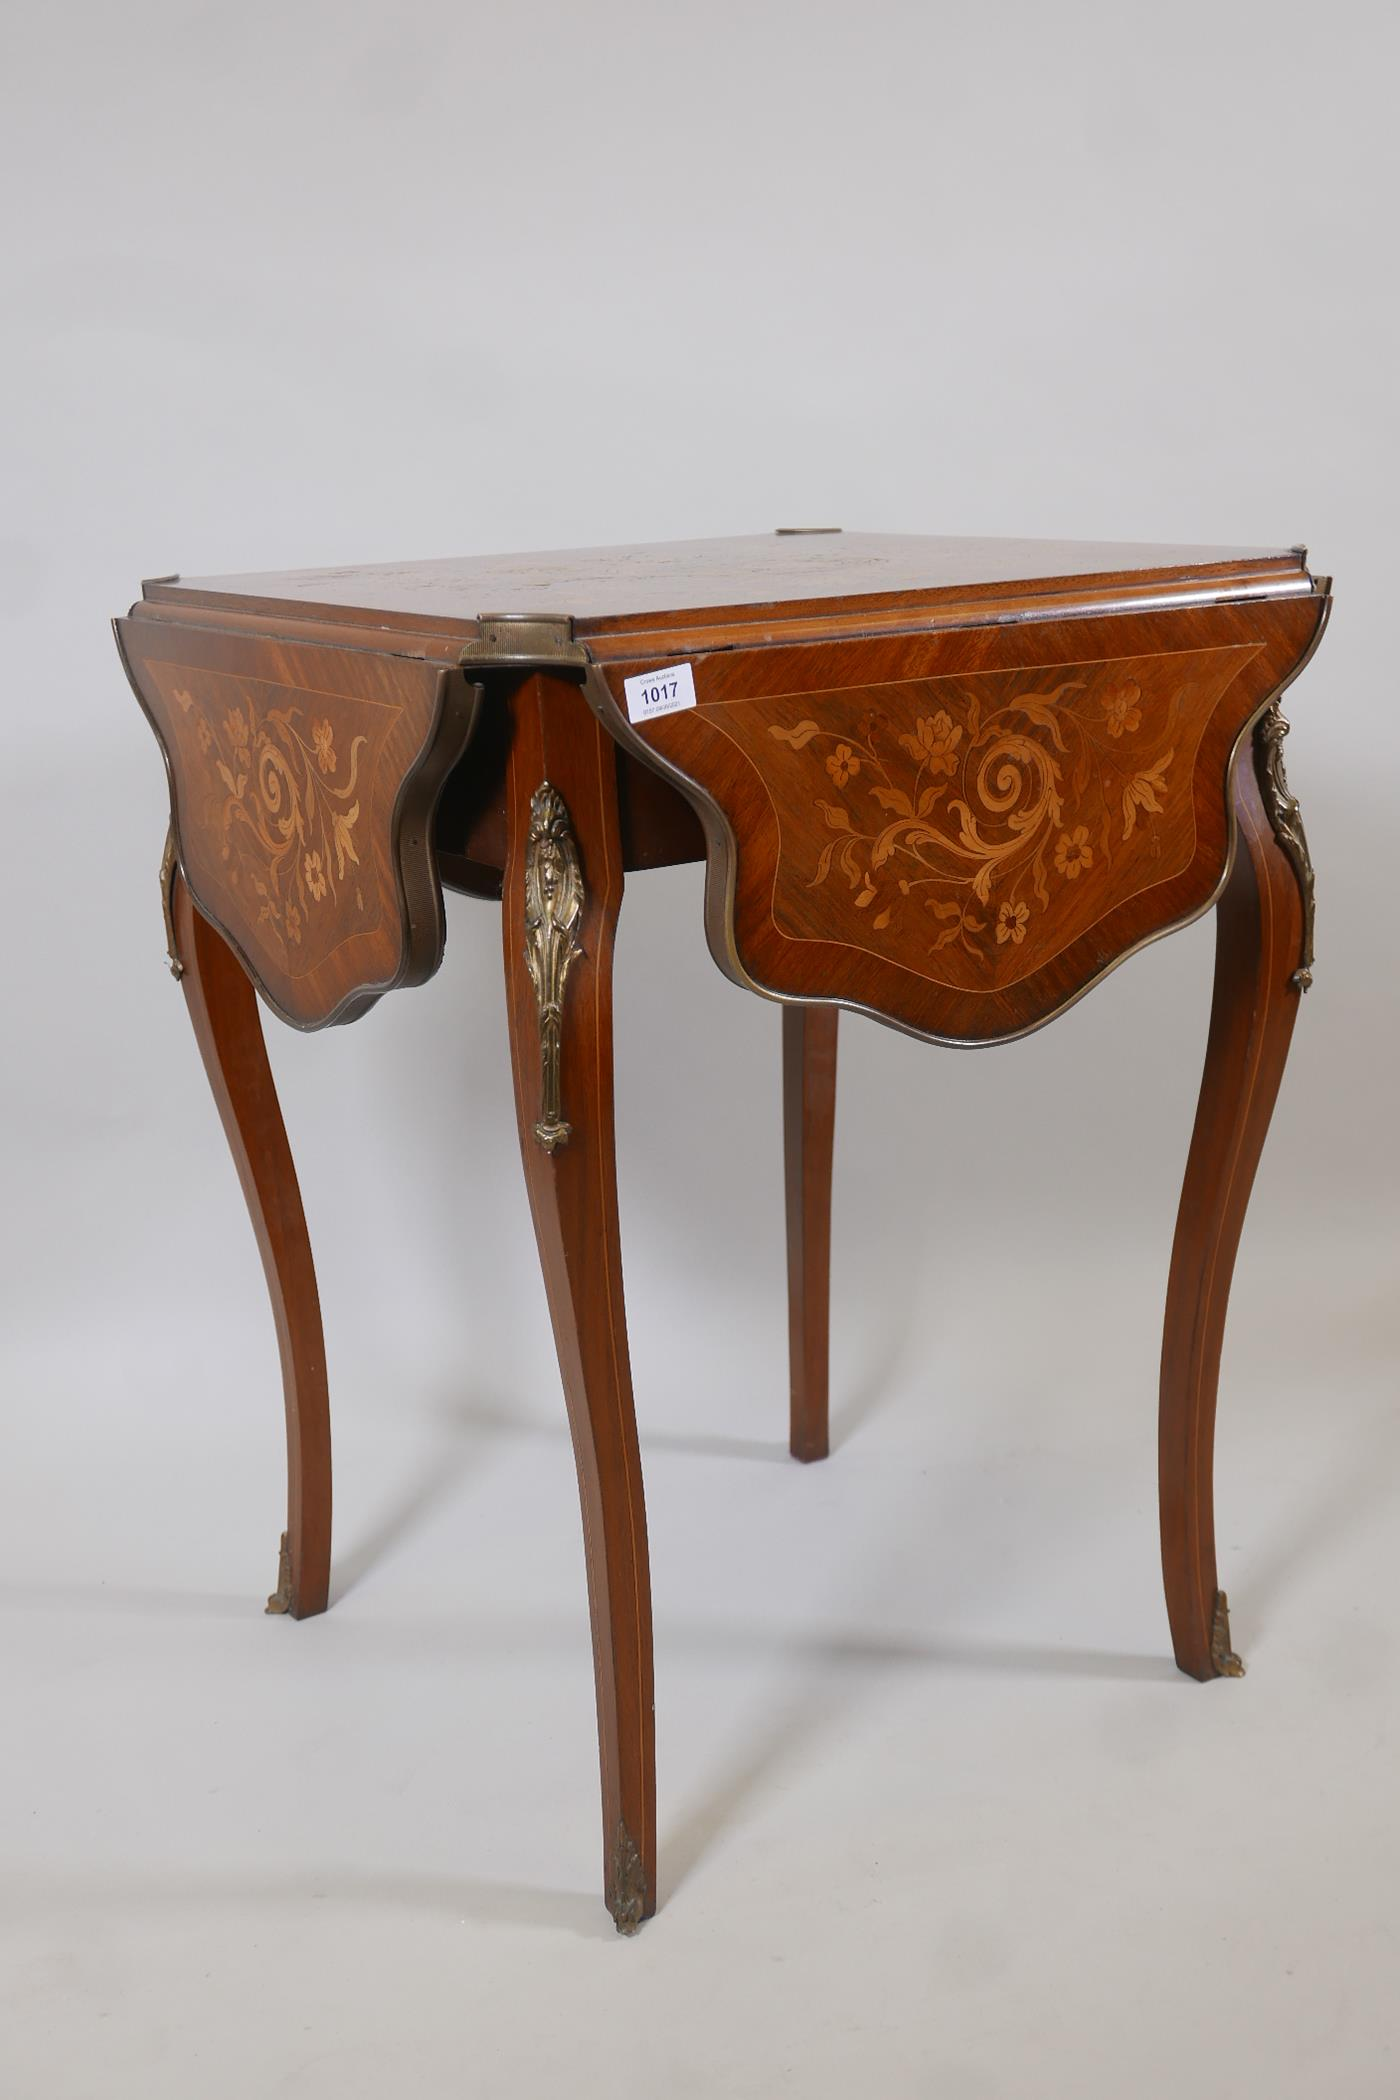 A French C19th marquetry inlaid rosewood centre table, with shaped drop leaves and gilt brass